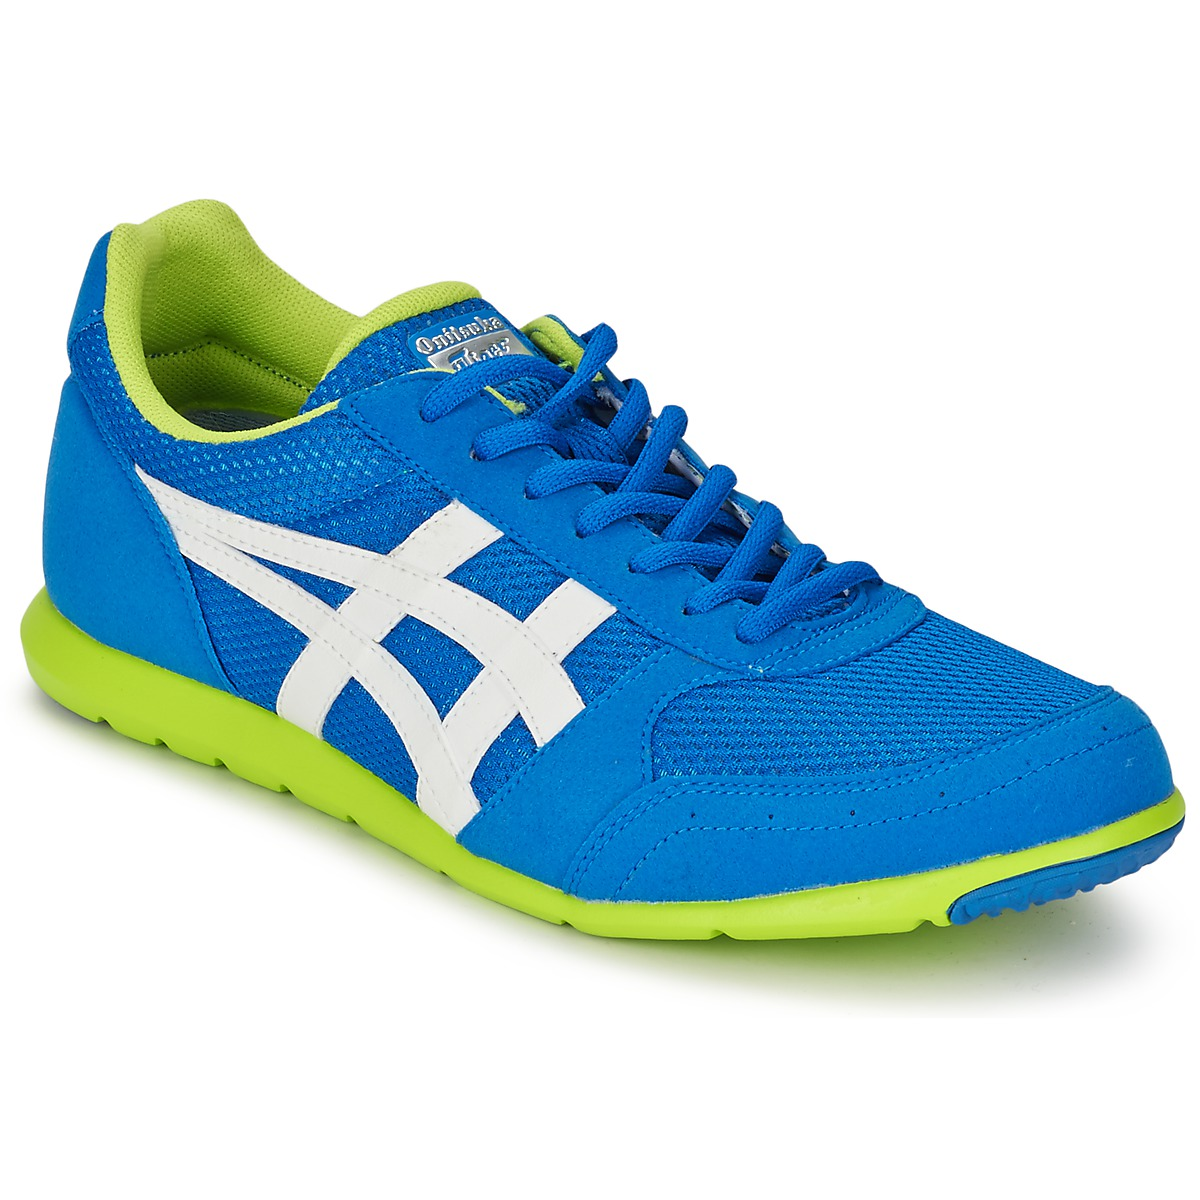 Onitsuka Tiger Sherborne runner Mid blue/white - Chaussures Baskets basses Homme